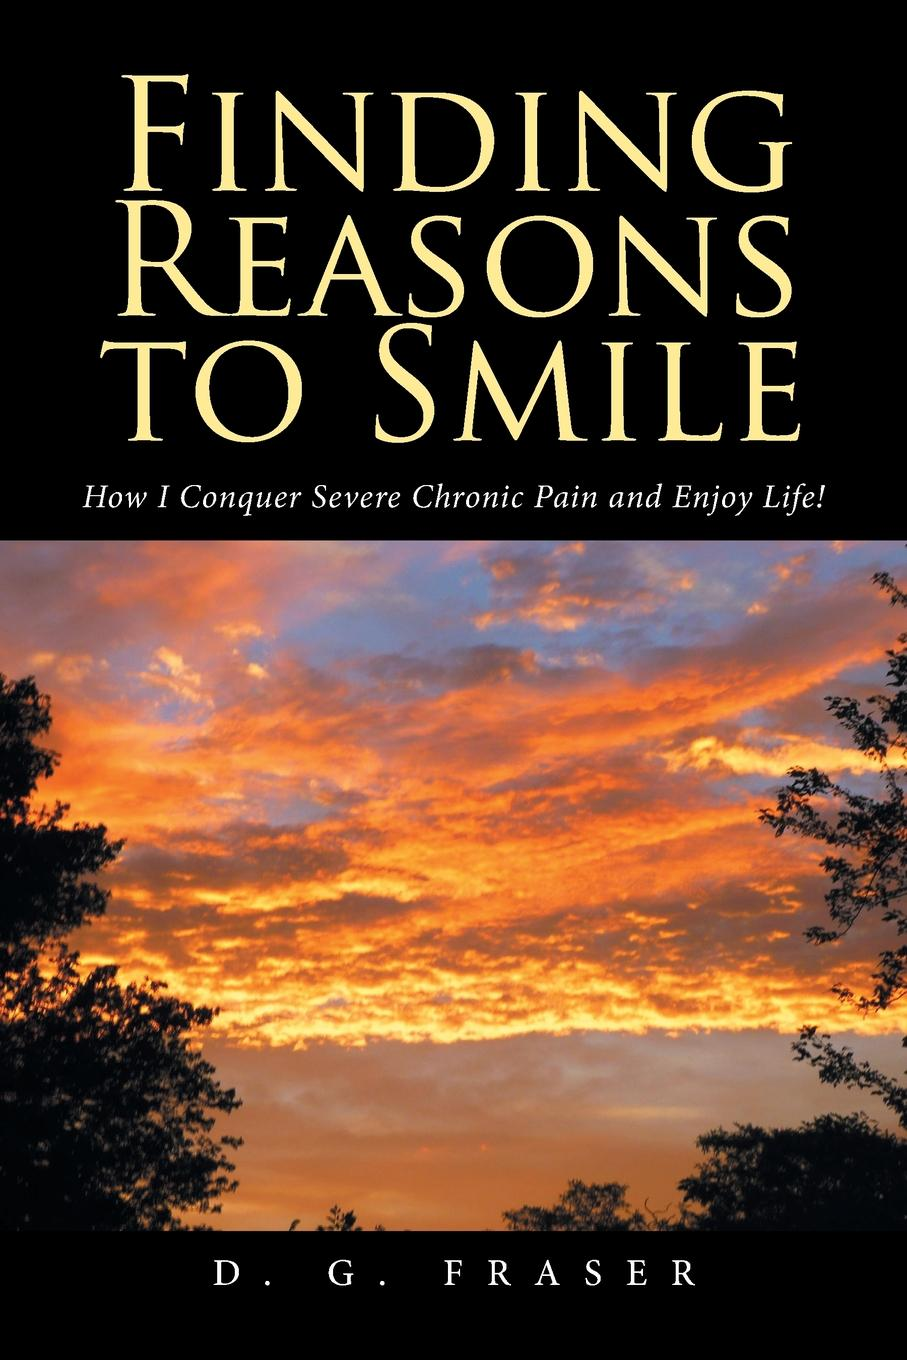 лучшая цена D. G. Fraser Finding Reasons to Smile. How I Conquer Severe Chronic Pain and Enjoy Life.